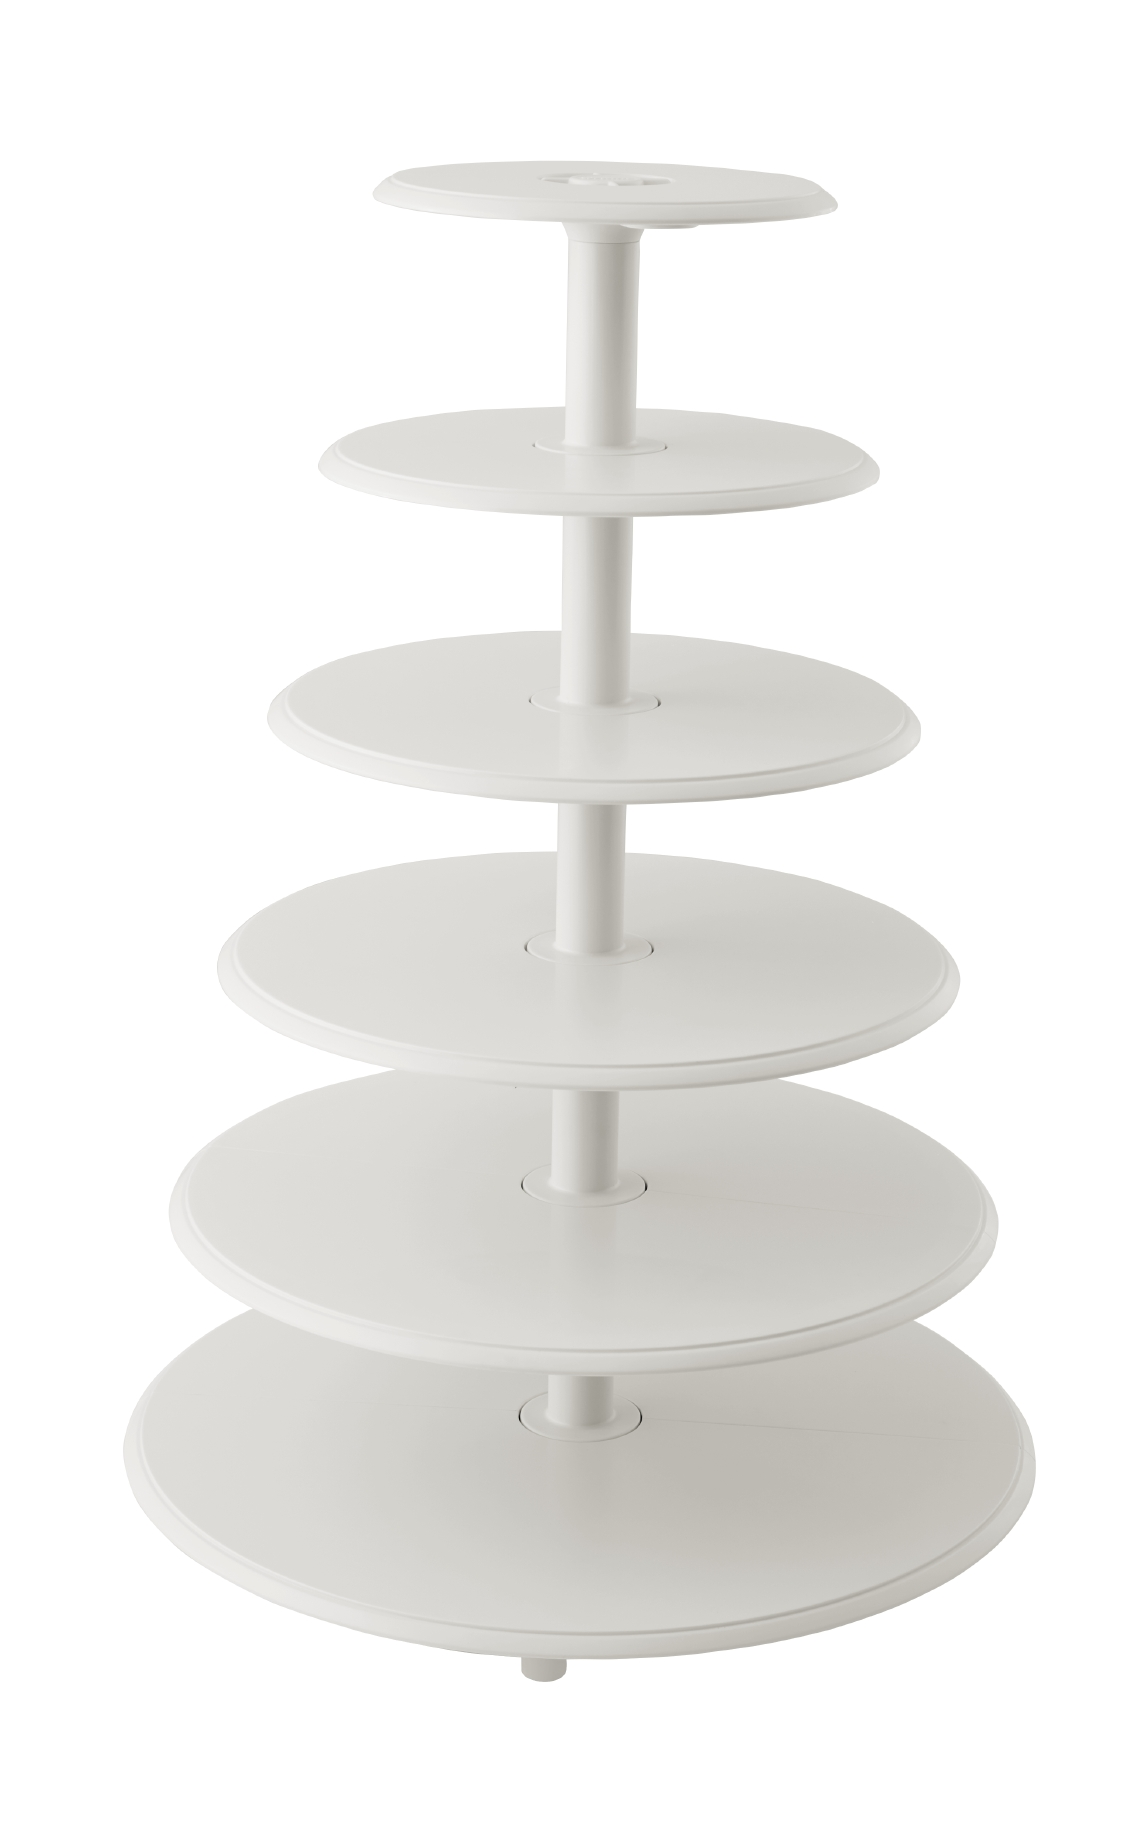 Wilton Towering Tiers Cupcake and Dessert Stand - Walmart.com